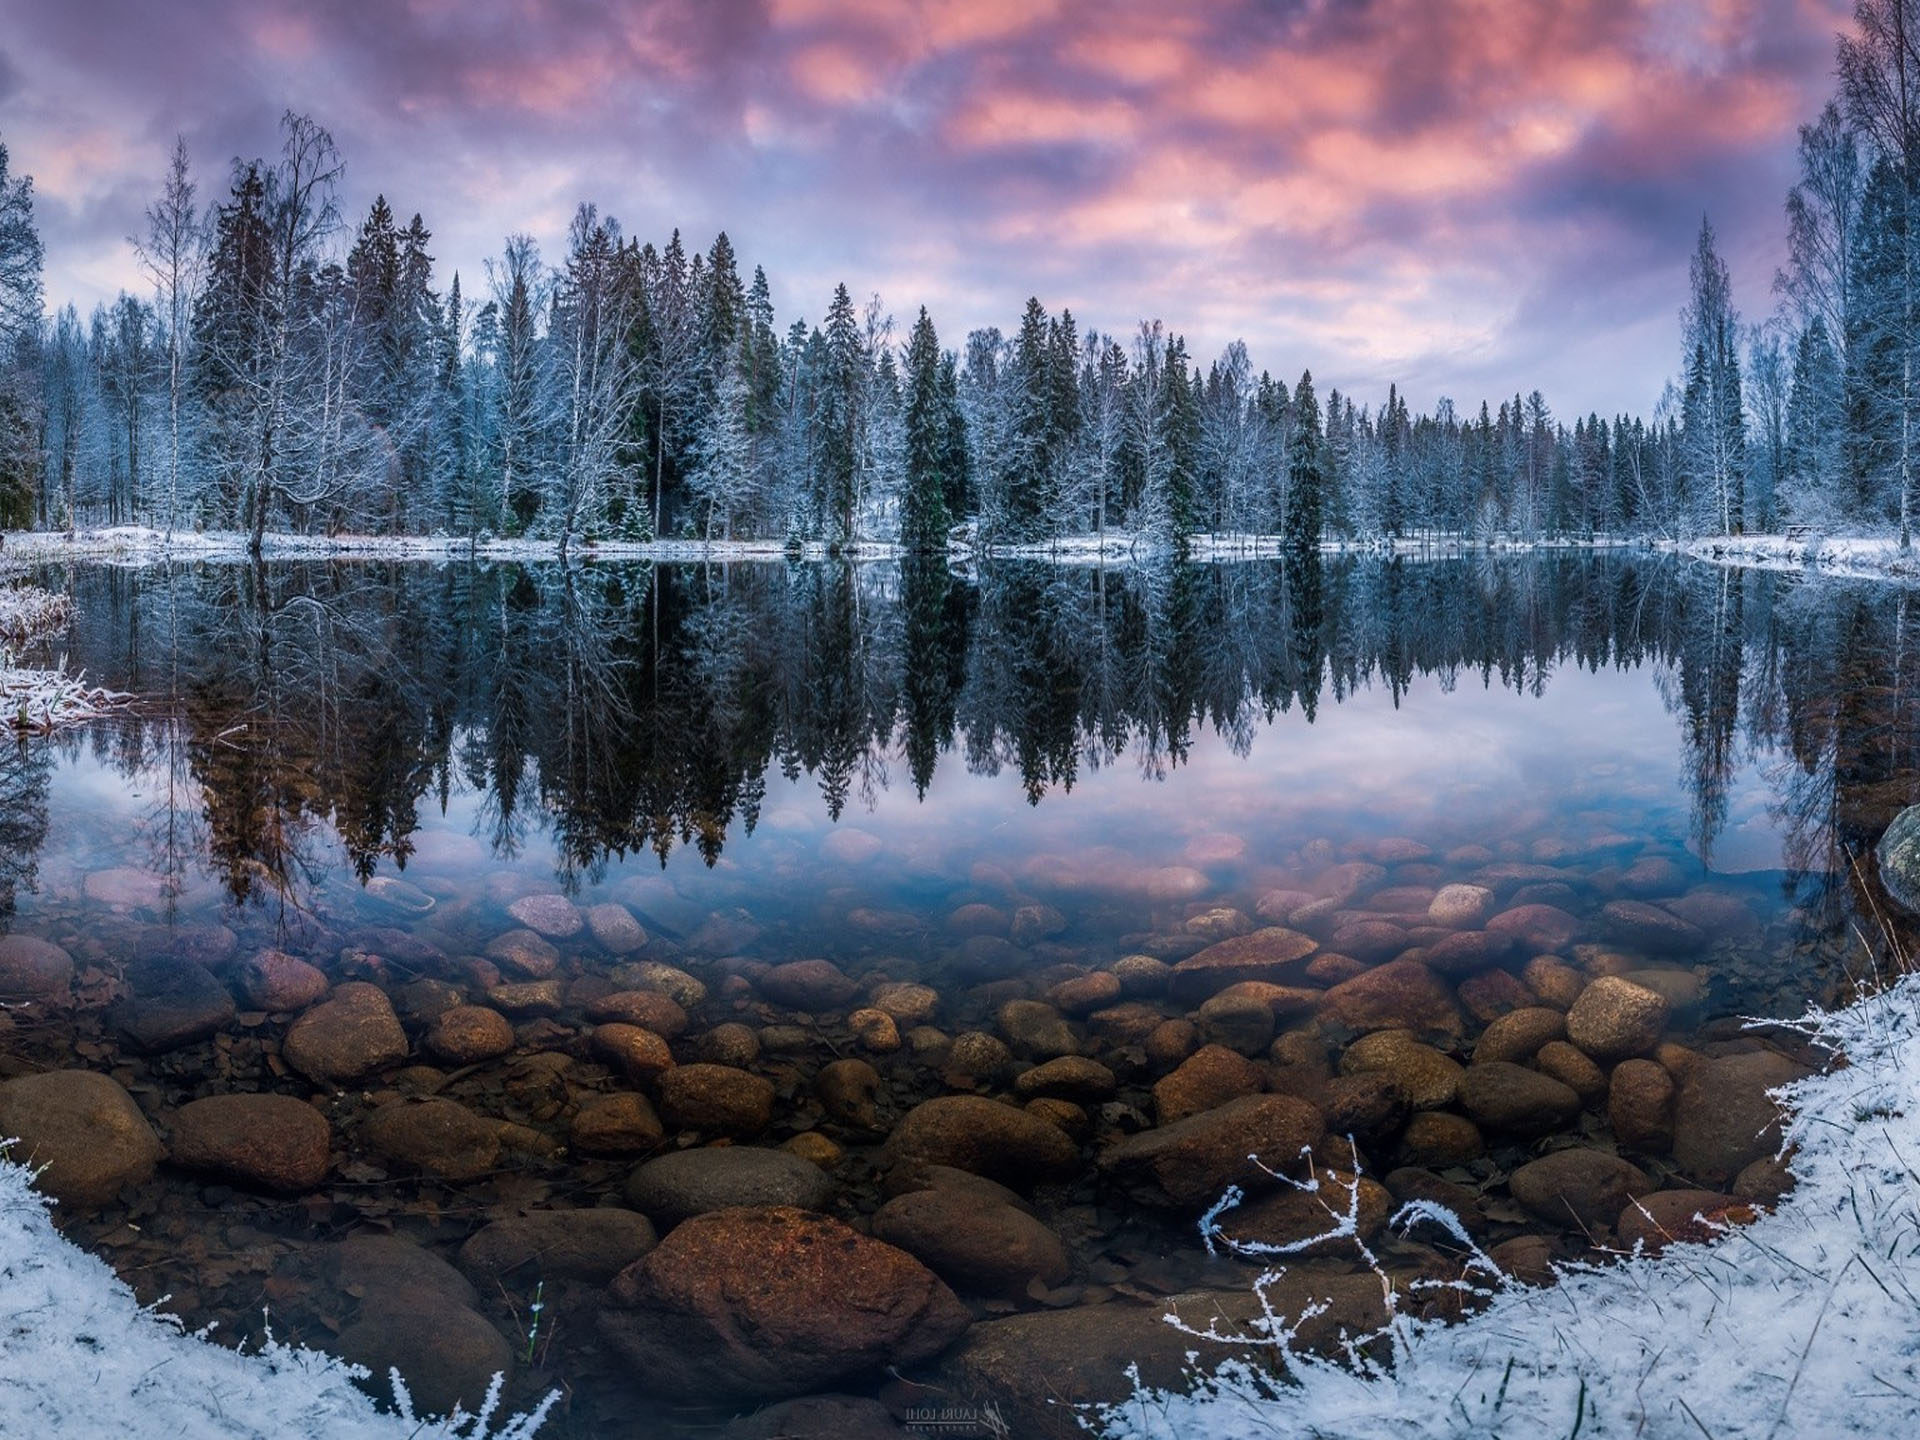 Fall Wallpaper Lake Finland Nature Landscape Winter Snow Morning Sunrise